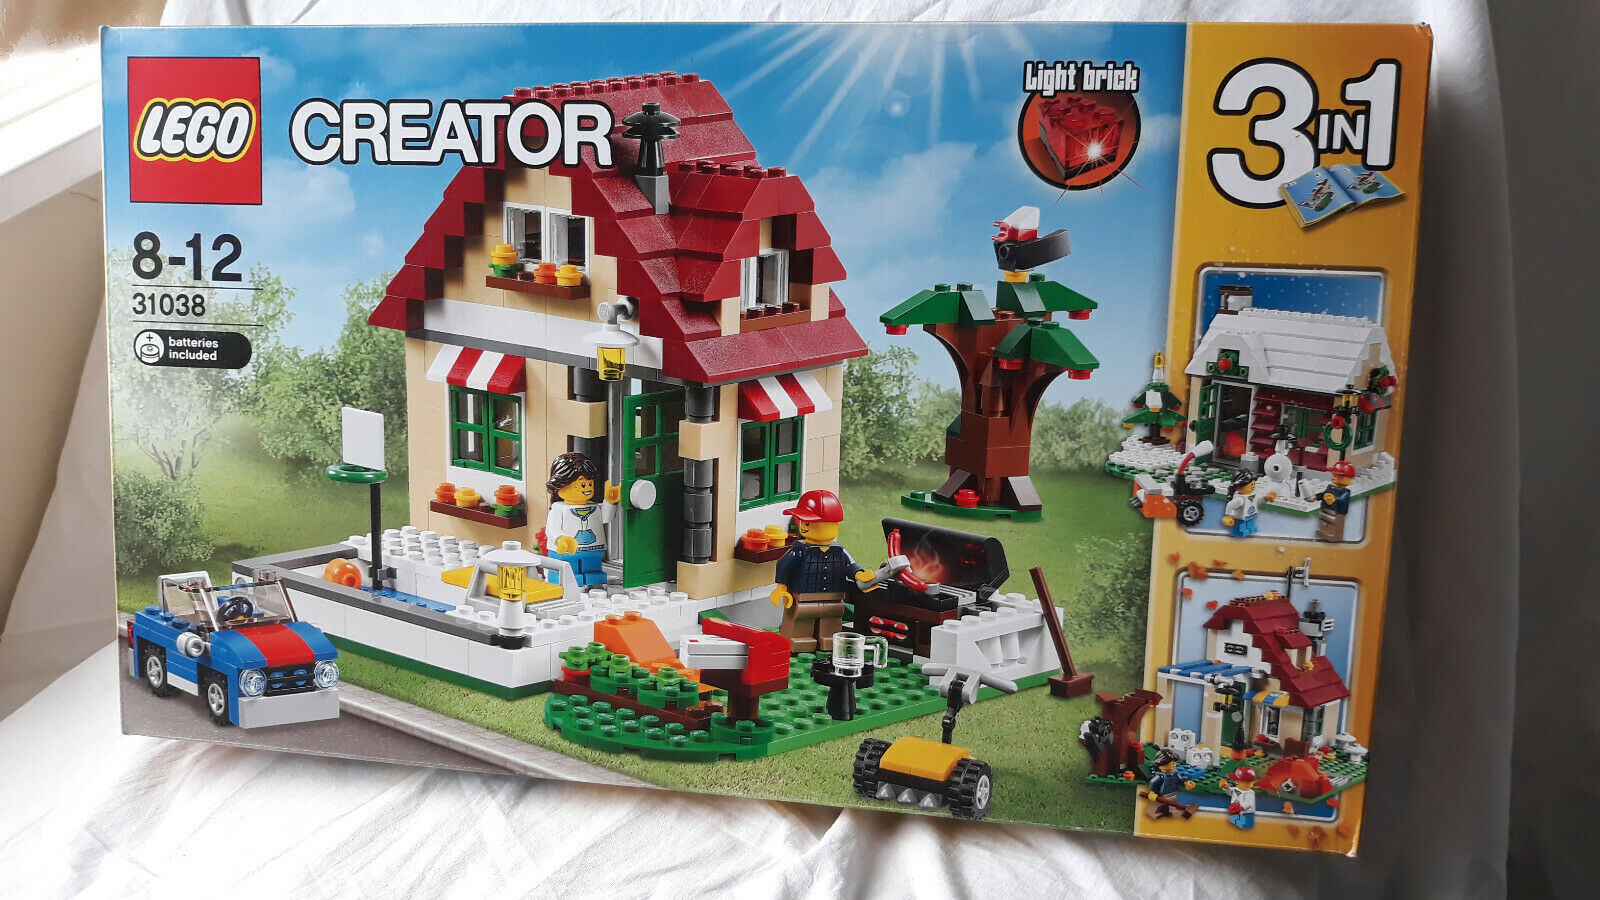 NEW Lego 31038 Changing Seasons House - Creator 3 in 1 - BNIB